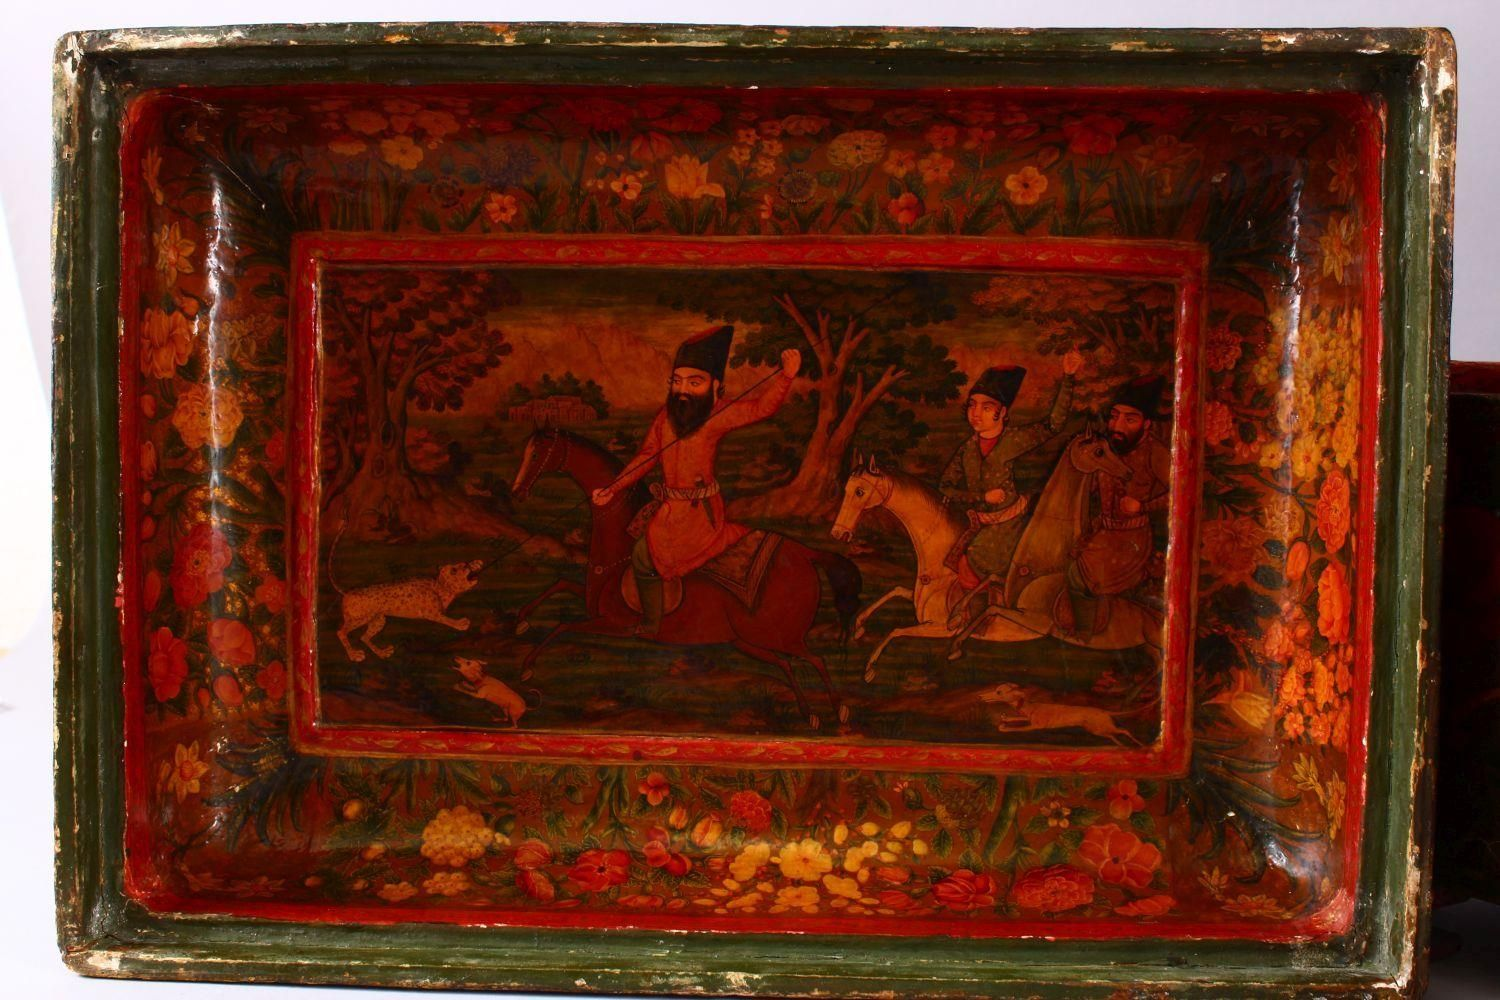 A GOOD PERSIAN QAJAR LACQUER PAINTED LIDDED BOX, decorated to the exterior with birds and detailed - Image 11 of 15